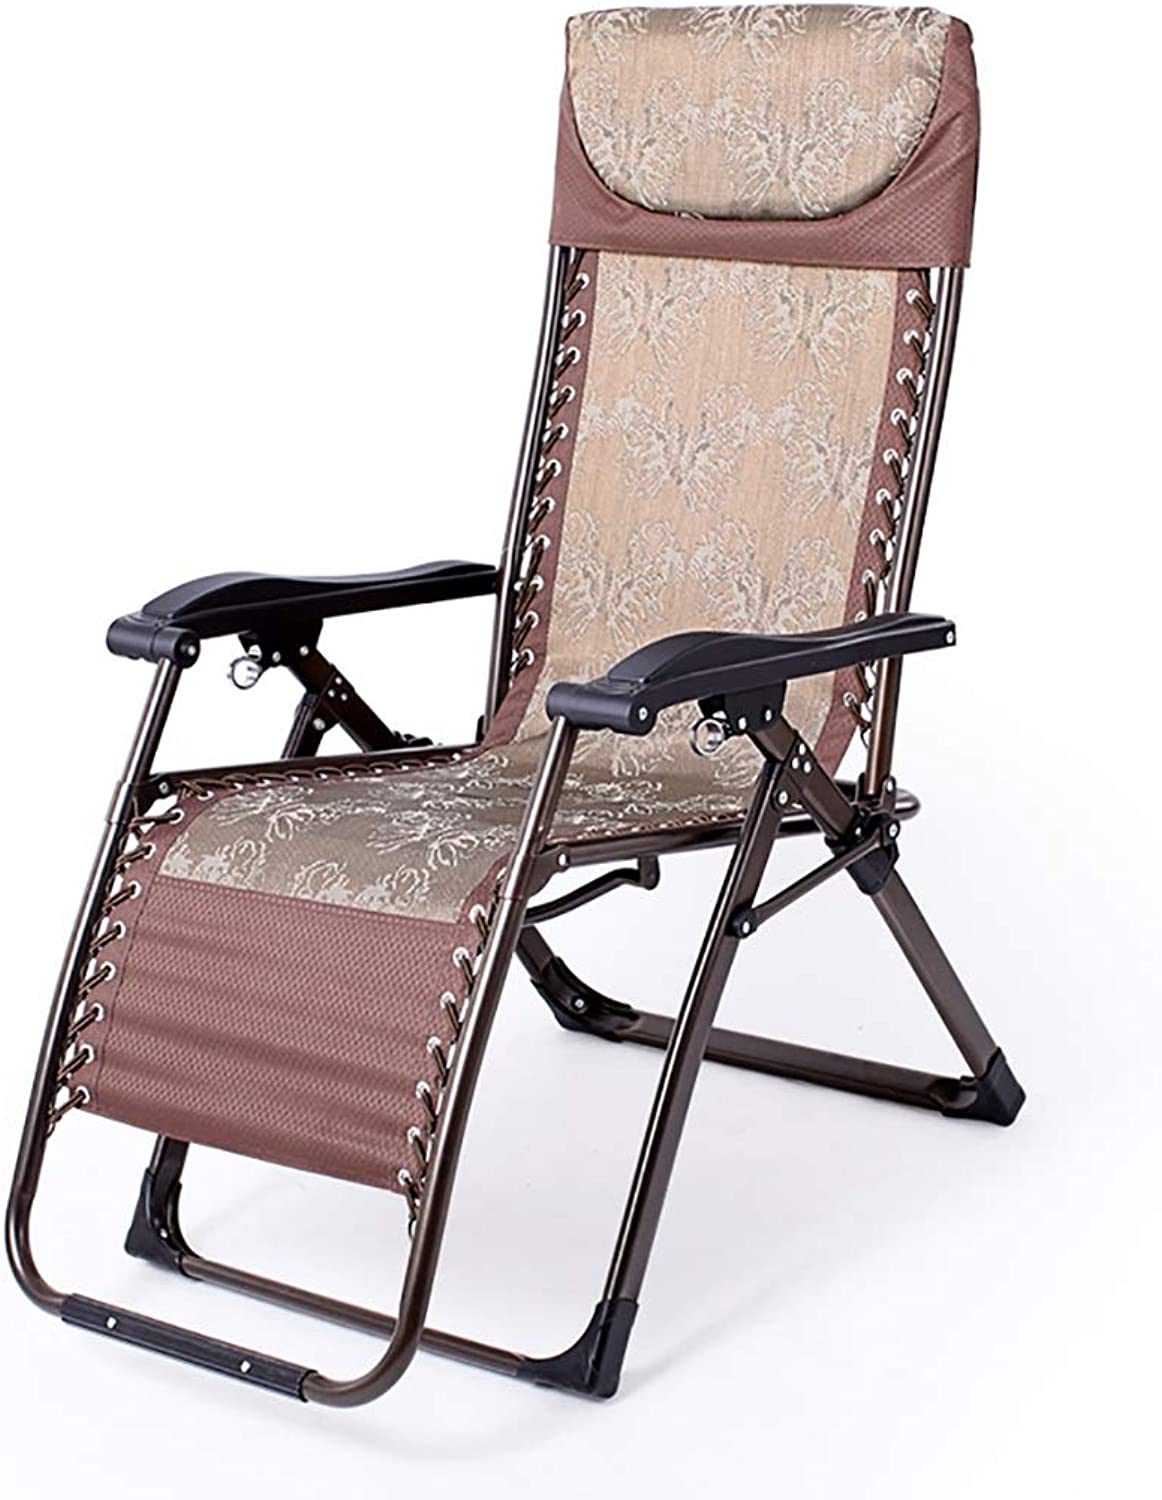 Chair Recliner Foldable Adjustable Lounge Chair Multi-use NAP Bed Beach Chair (color   B)